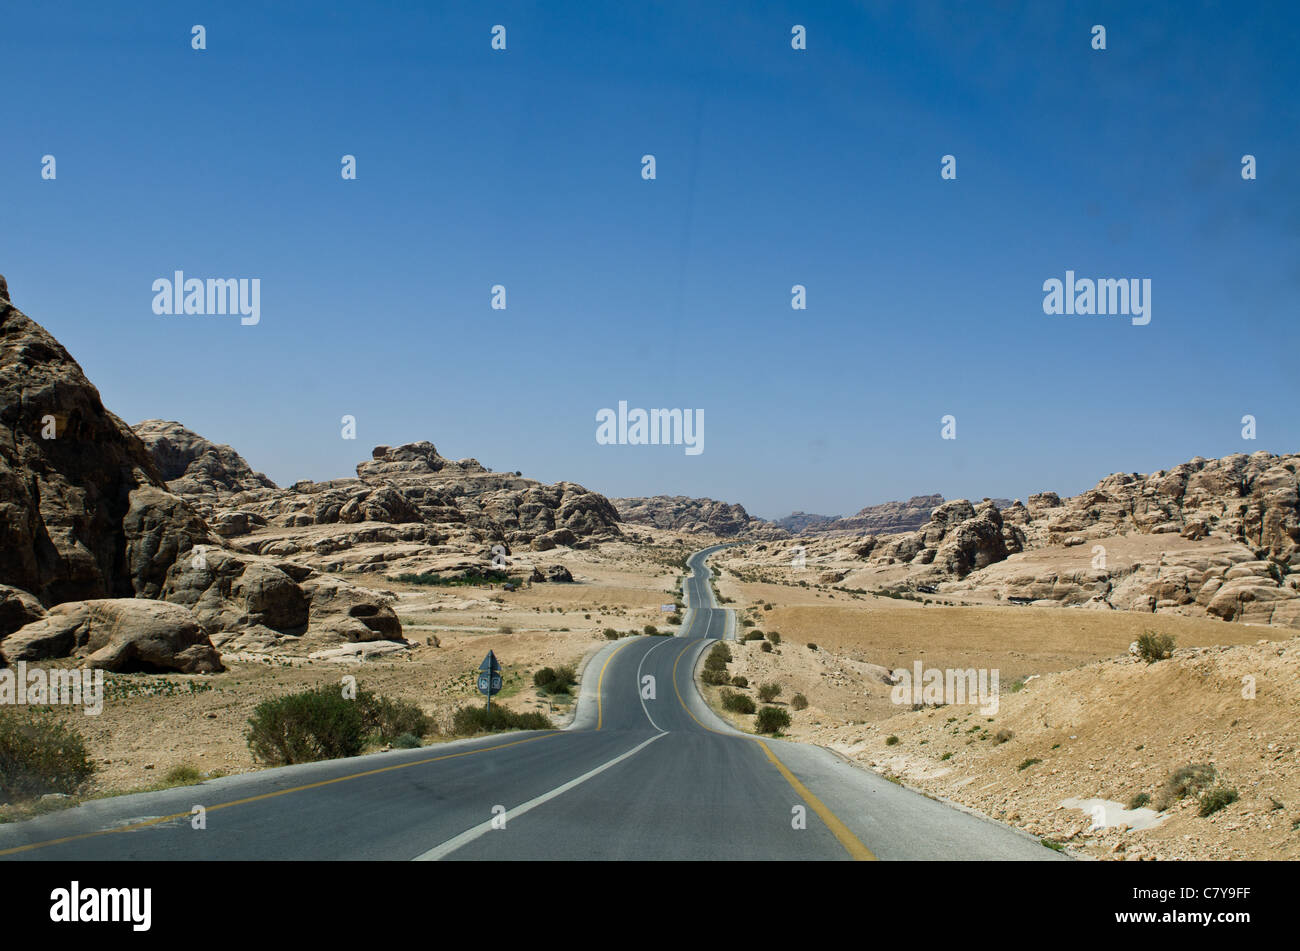 the road leading from little petra to petra in the Jordanian Desert, scattered around are remnants of carved dwellings - Stock Image